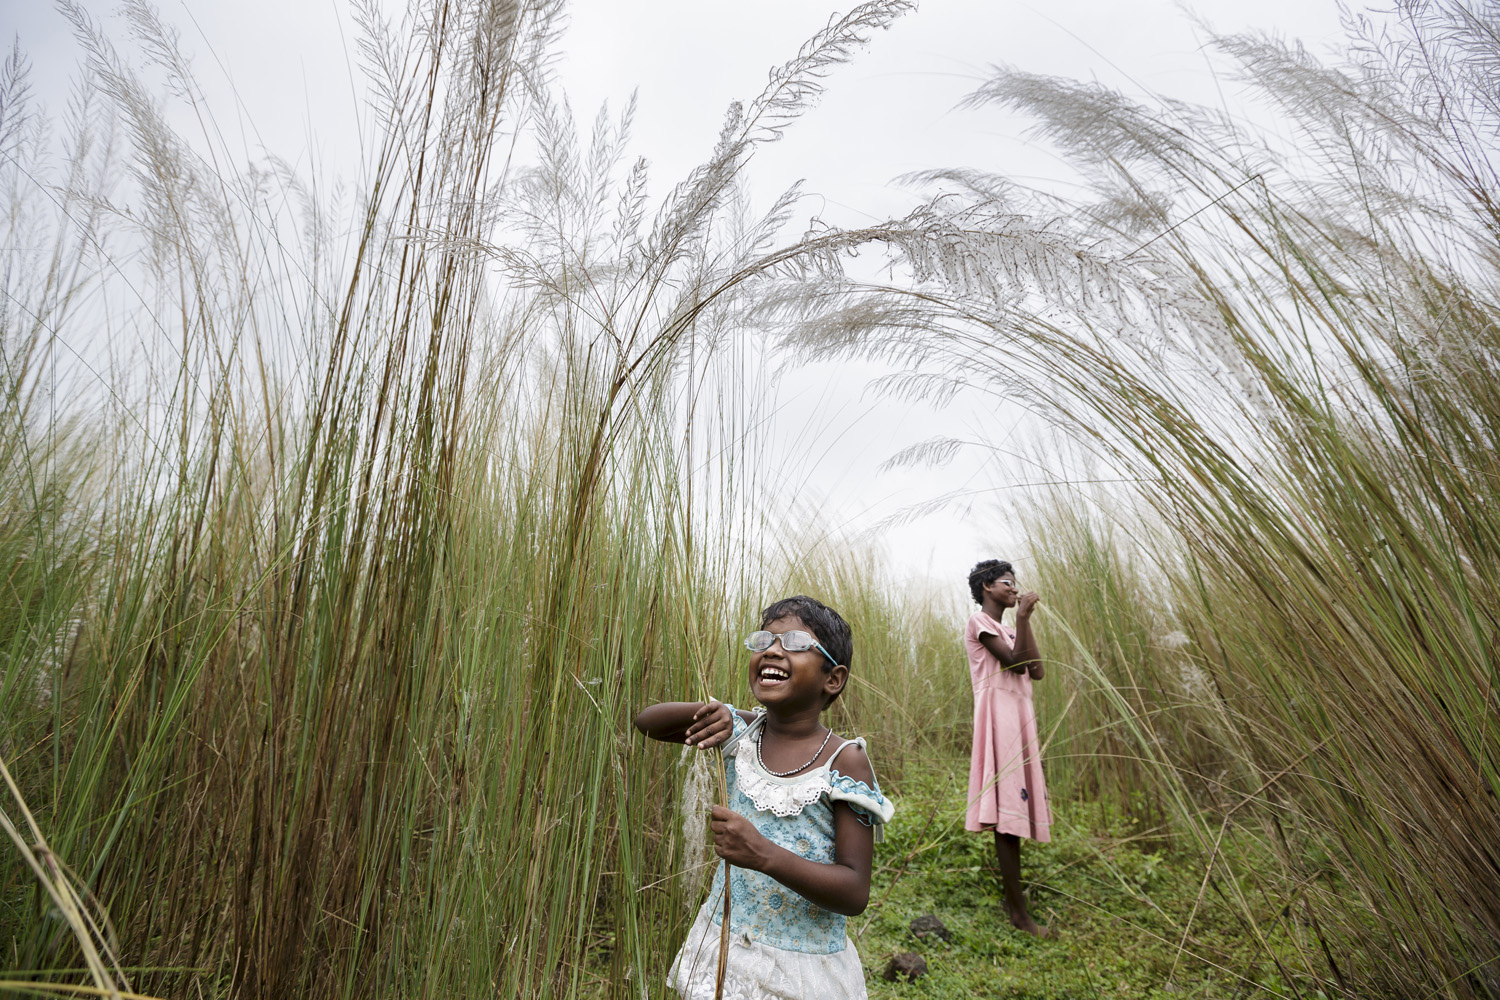 Anita and Sonia explore some of their first sensations of sight after their surgery, as they walk through bulrushes near their village, Oct. 28, 2013 in West Bengal, India.